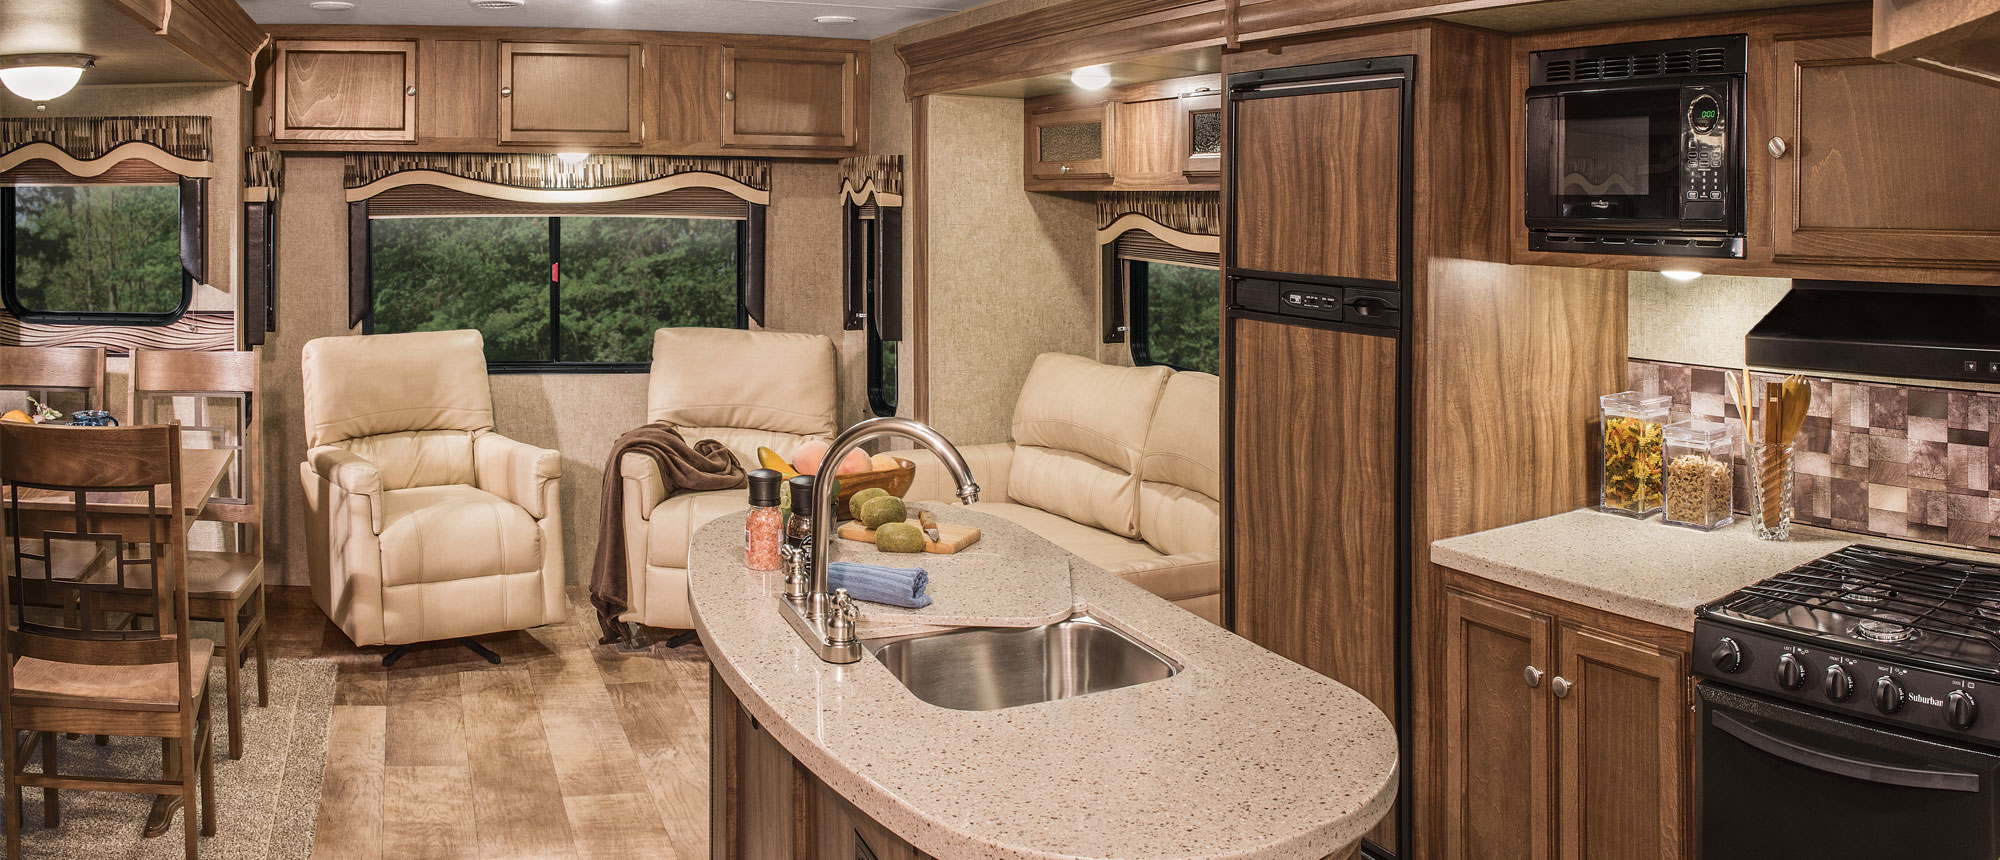 K-Z RV Sportsmen Fifth Wheels and Travel Trailers Interior Living Room and Kitchen